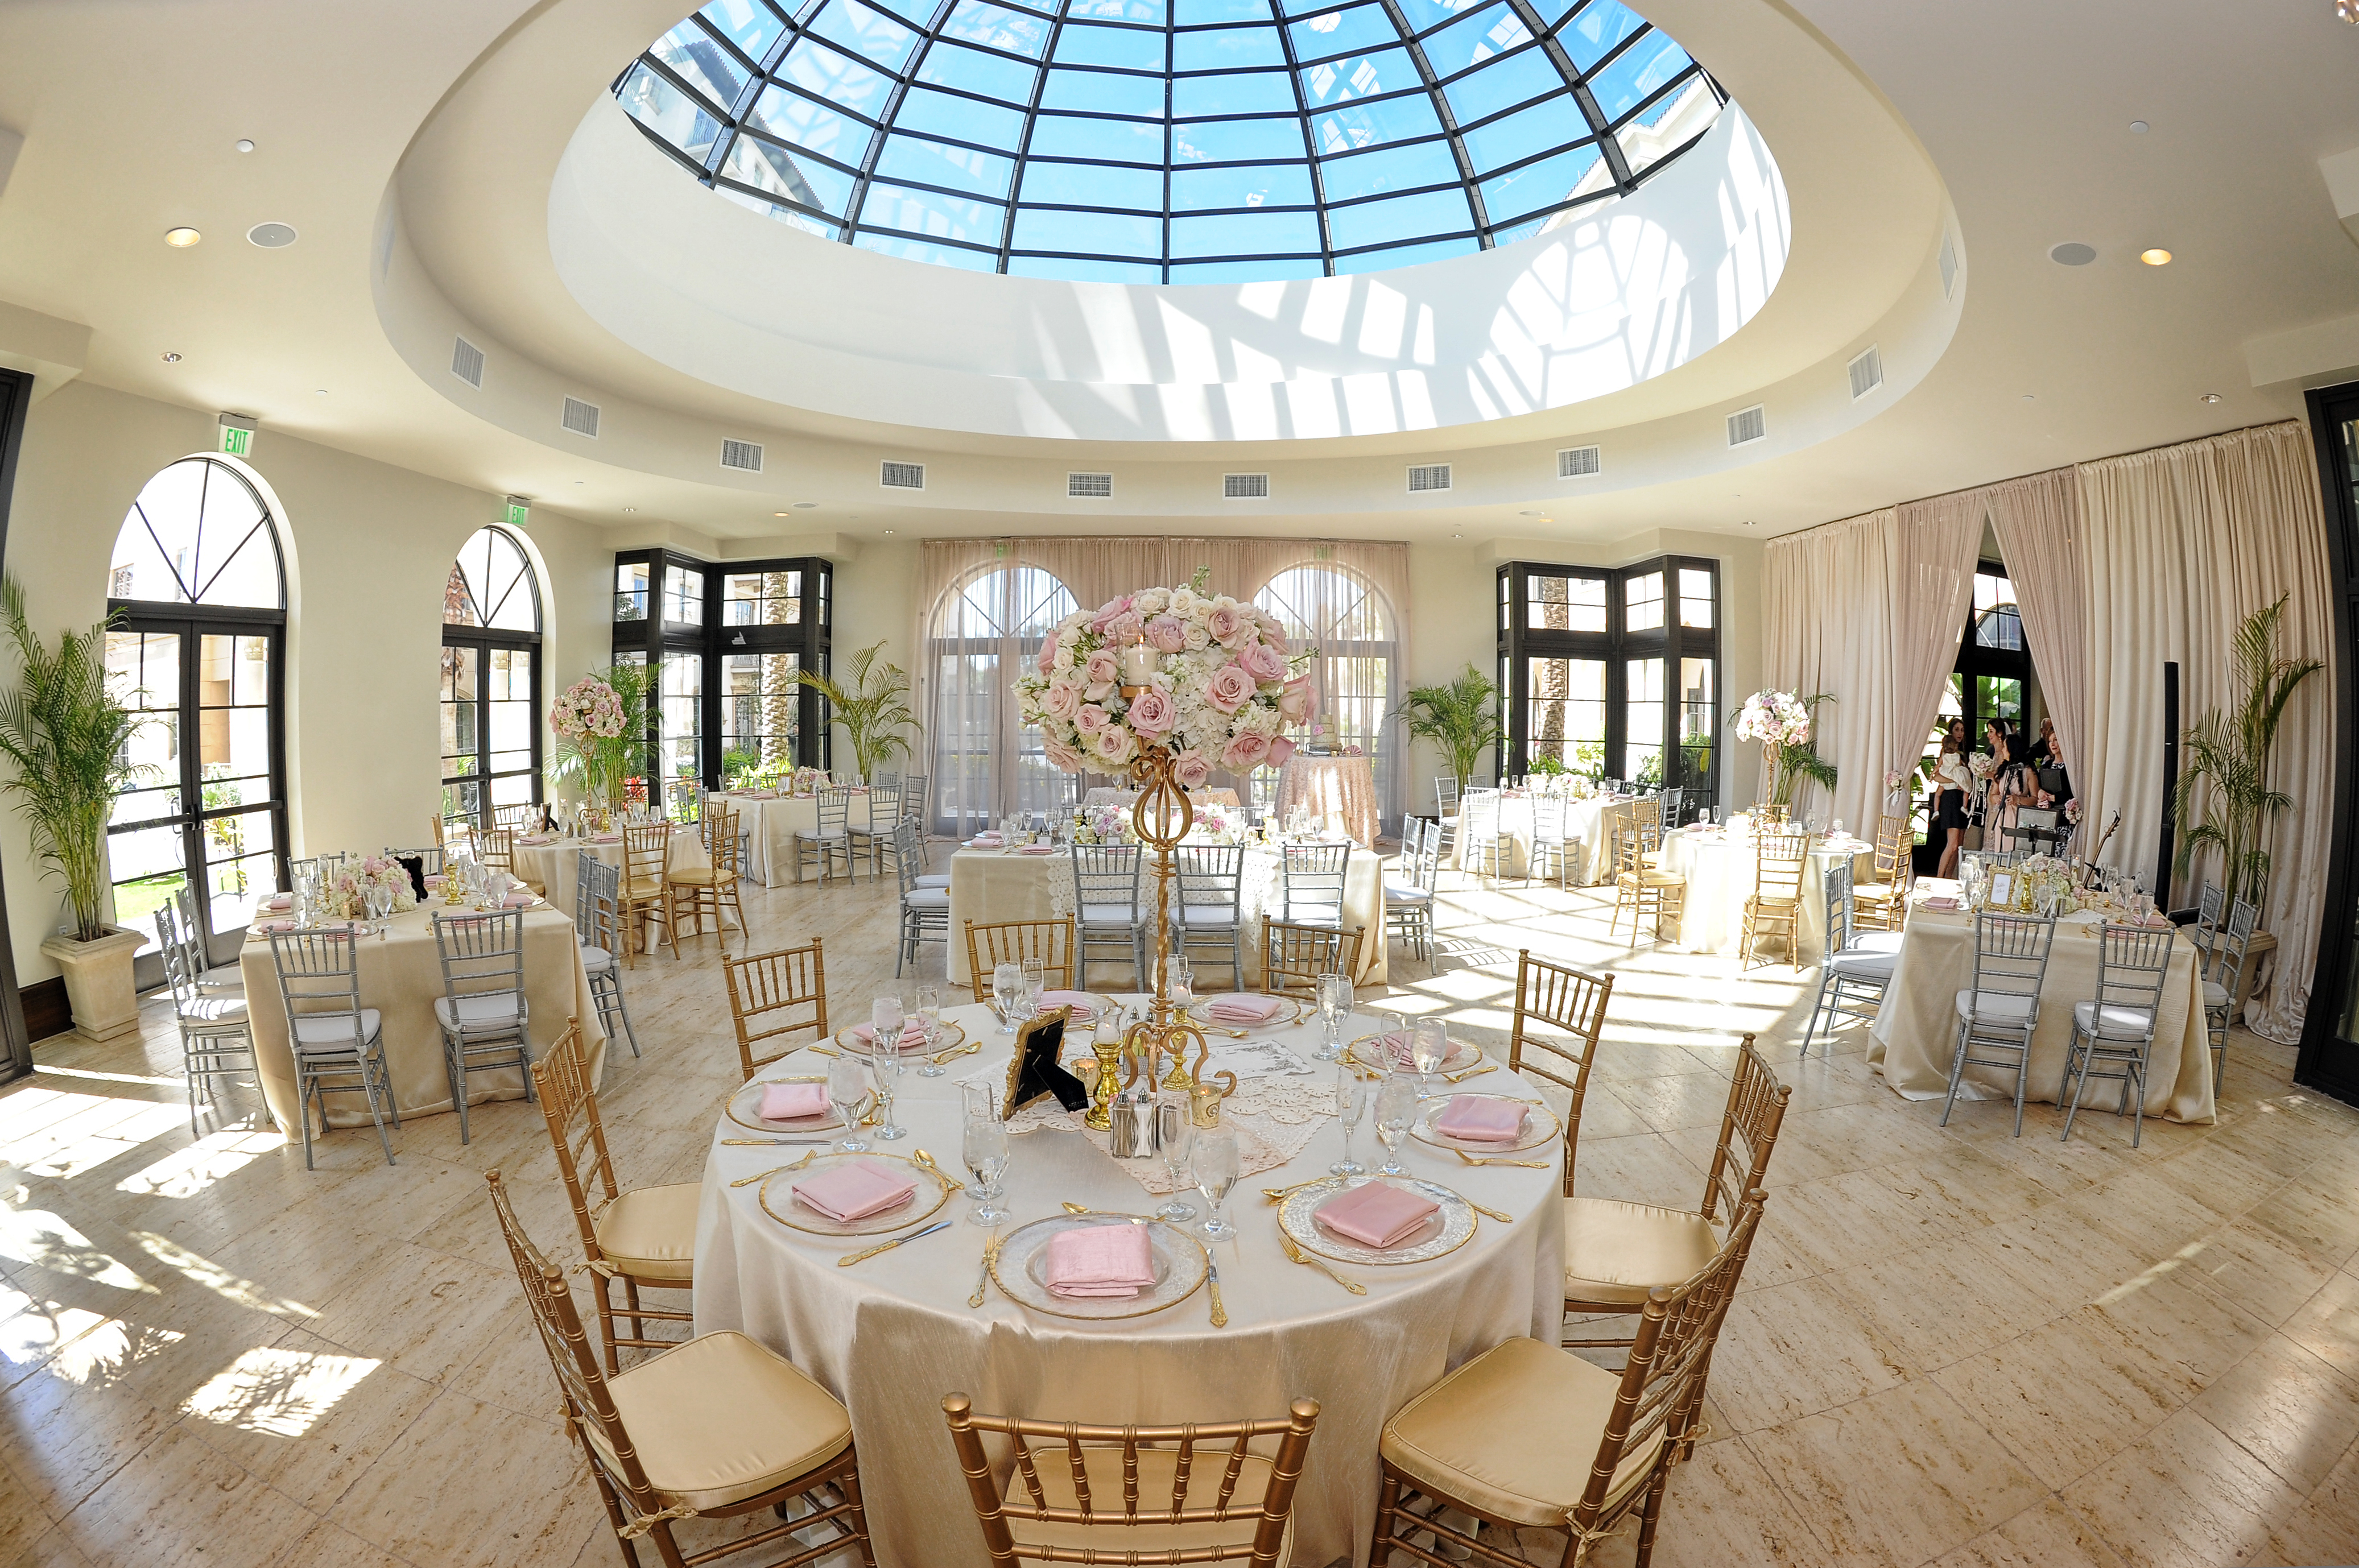 What Do S Love About Weddings And Events At Your Venue We Are Small Boutique Luxury Hotel With Only One Ballroom That Is A Really Good Thing